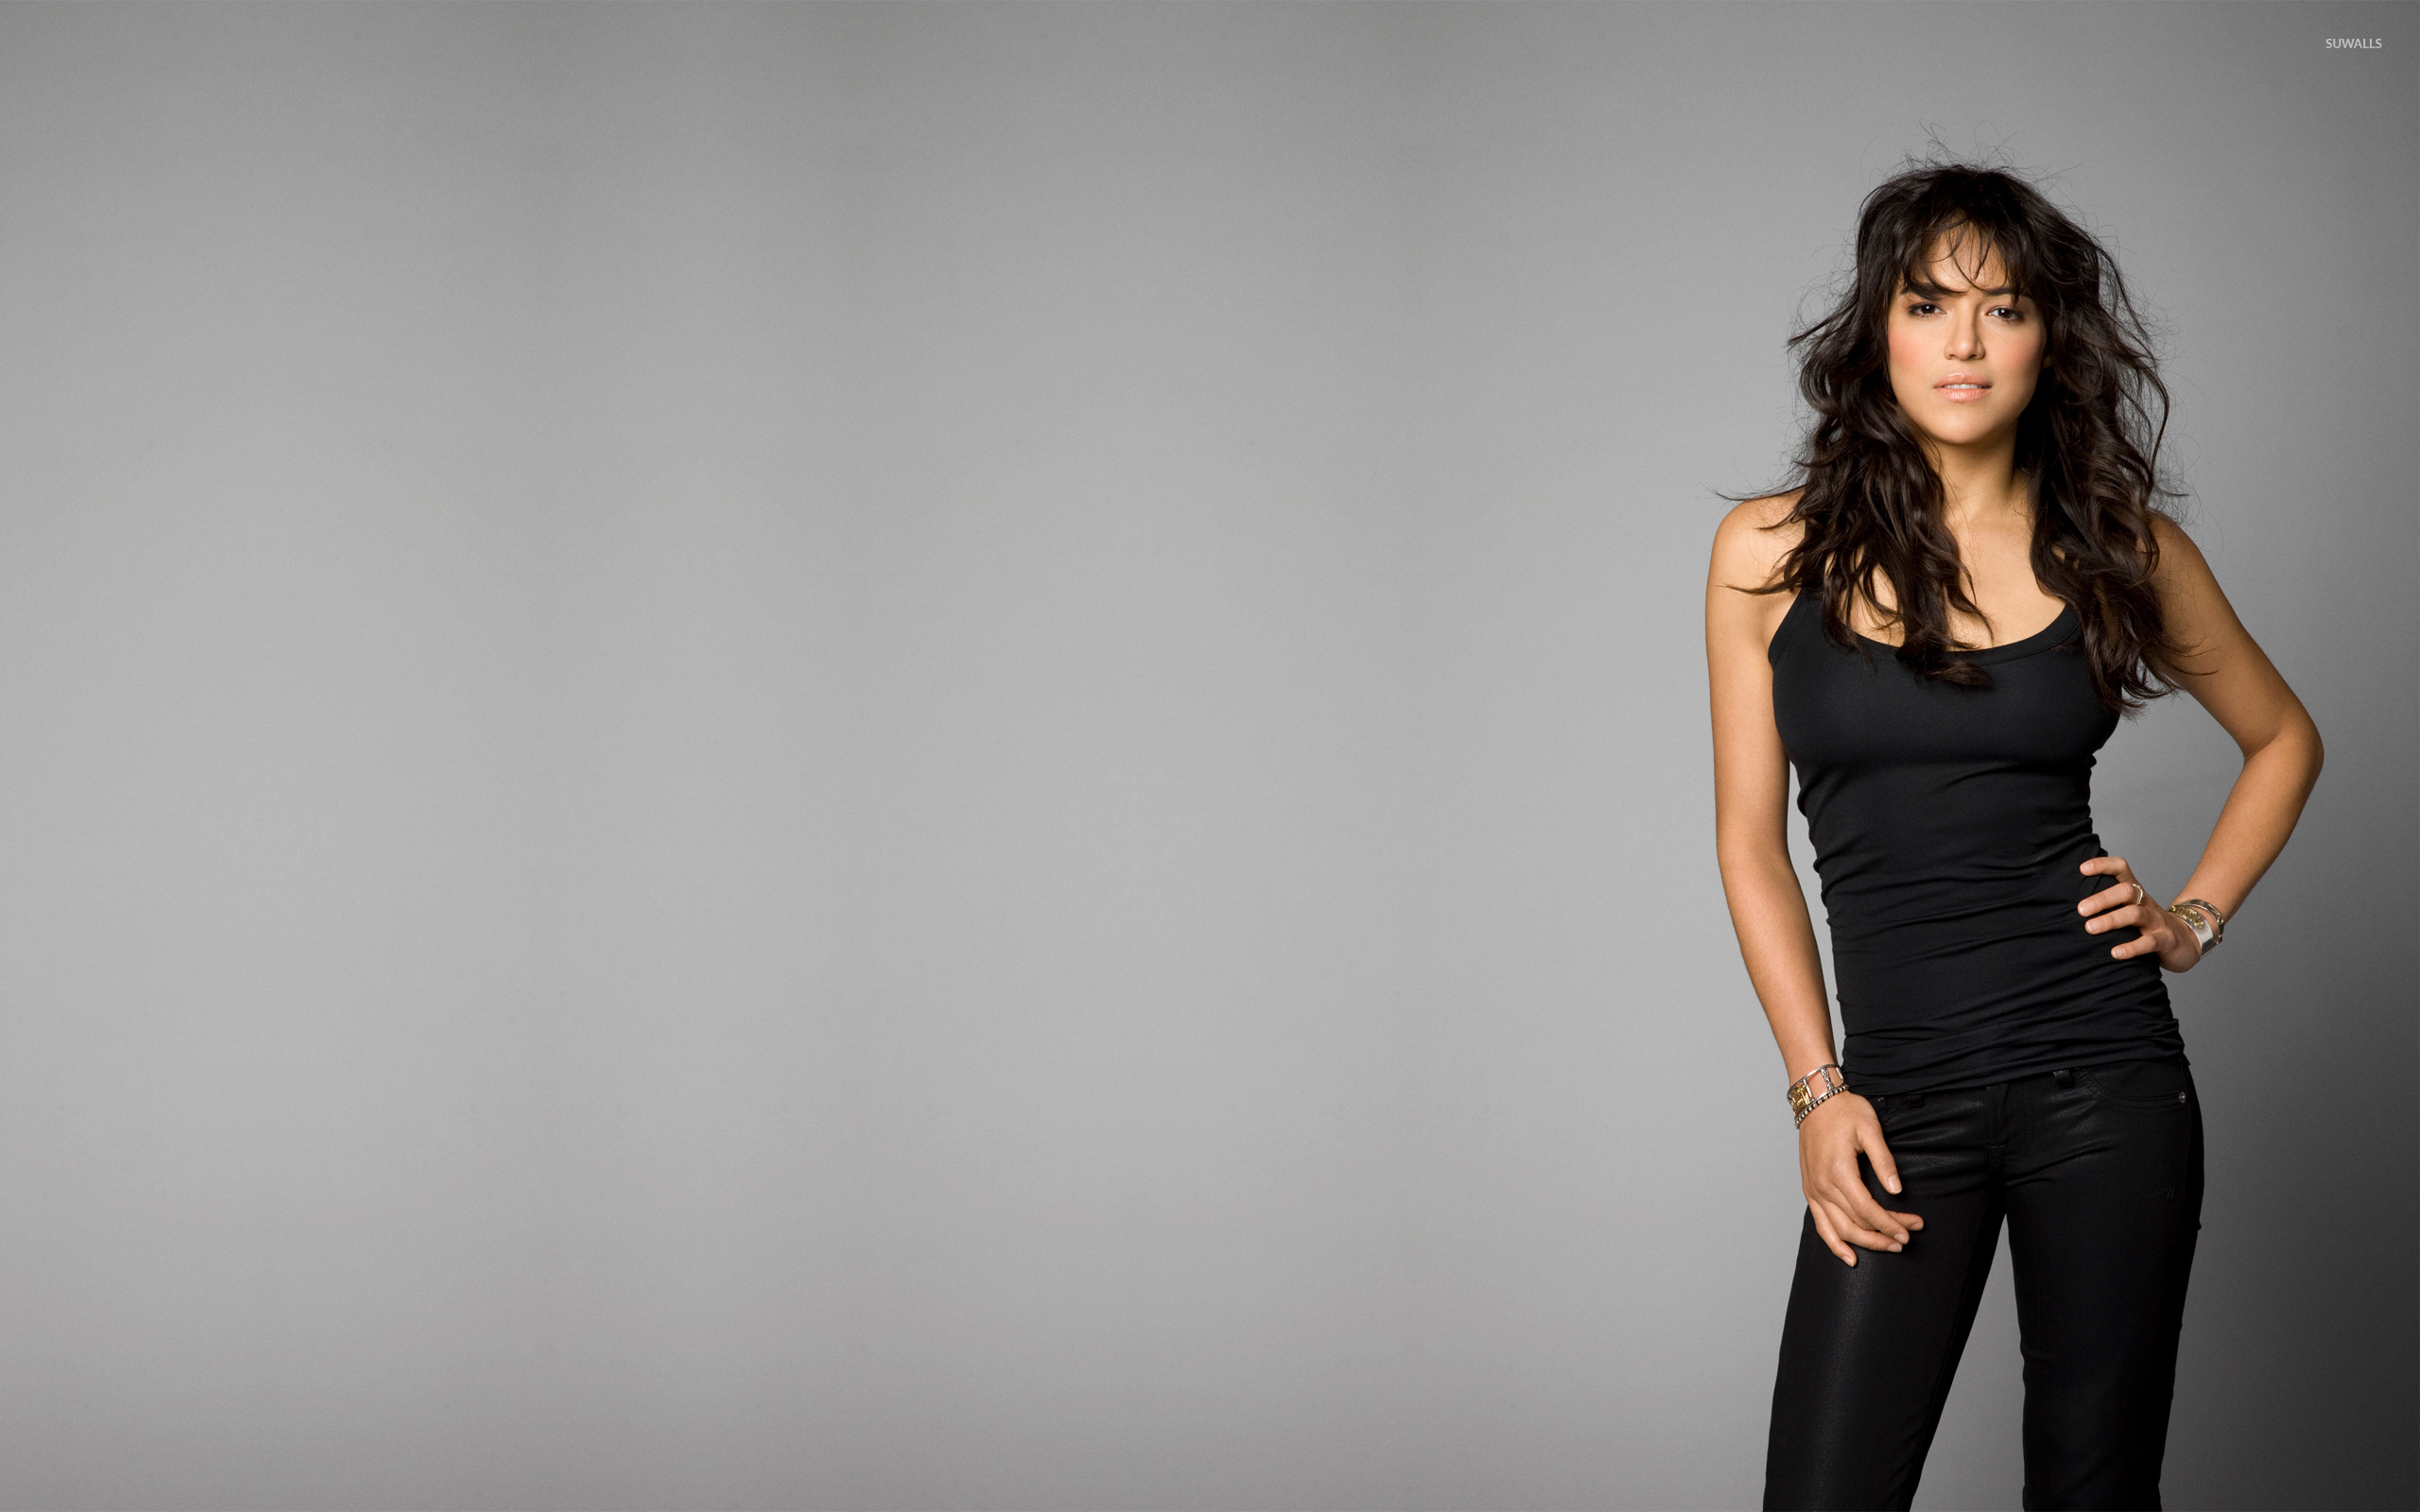 2560x1600 - Michelle Rodriguez Wallpapers 26